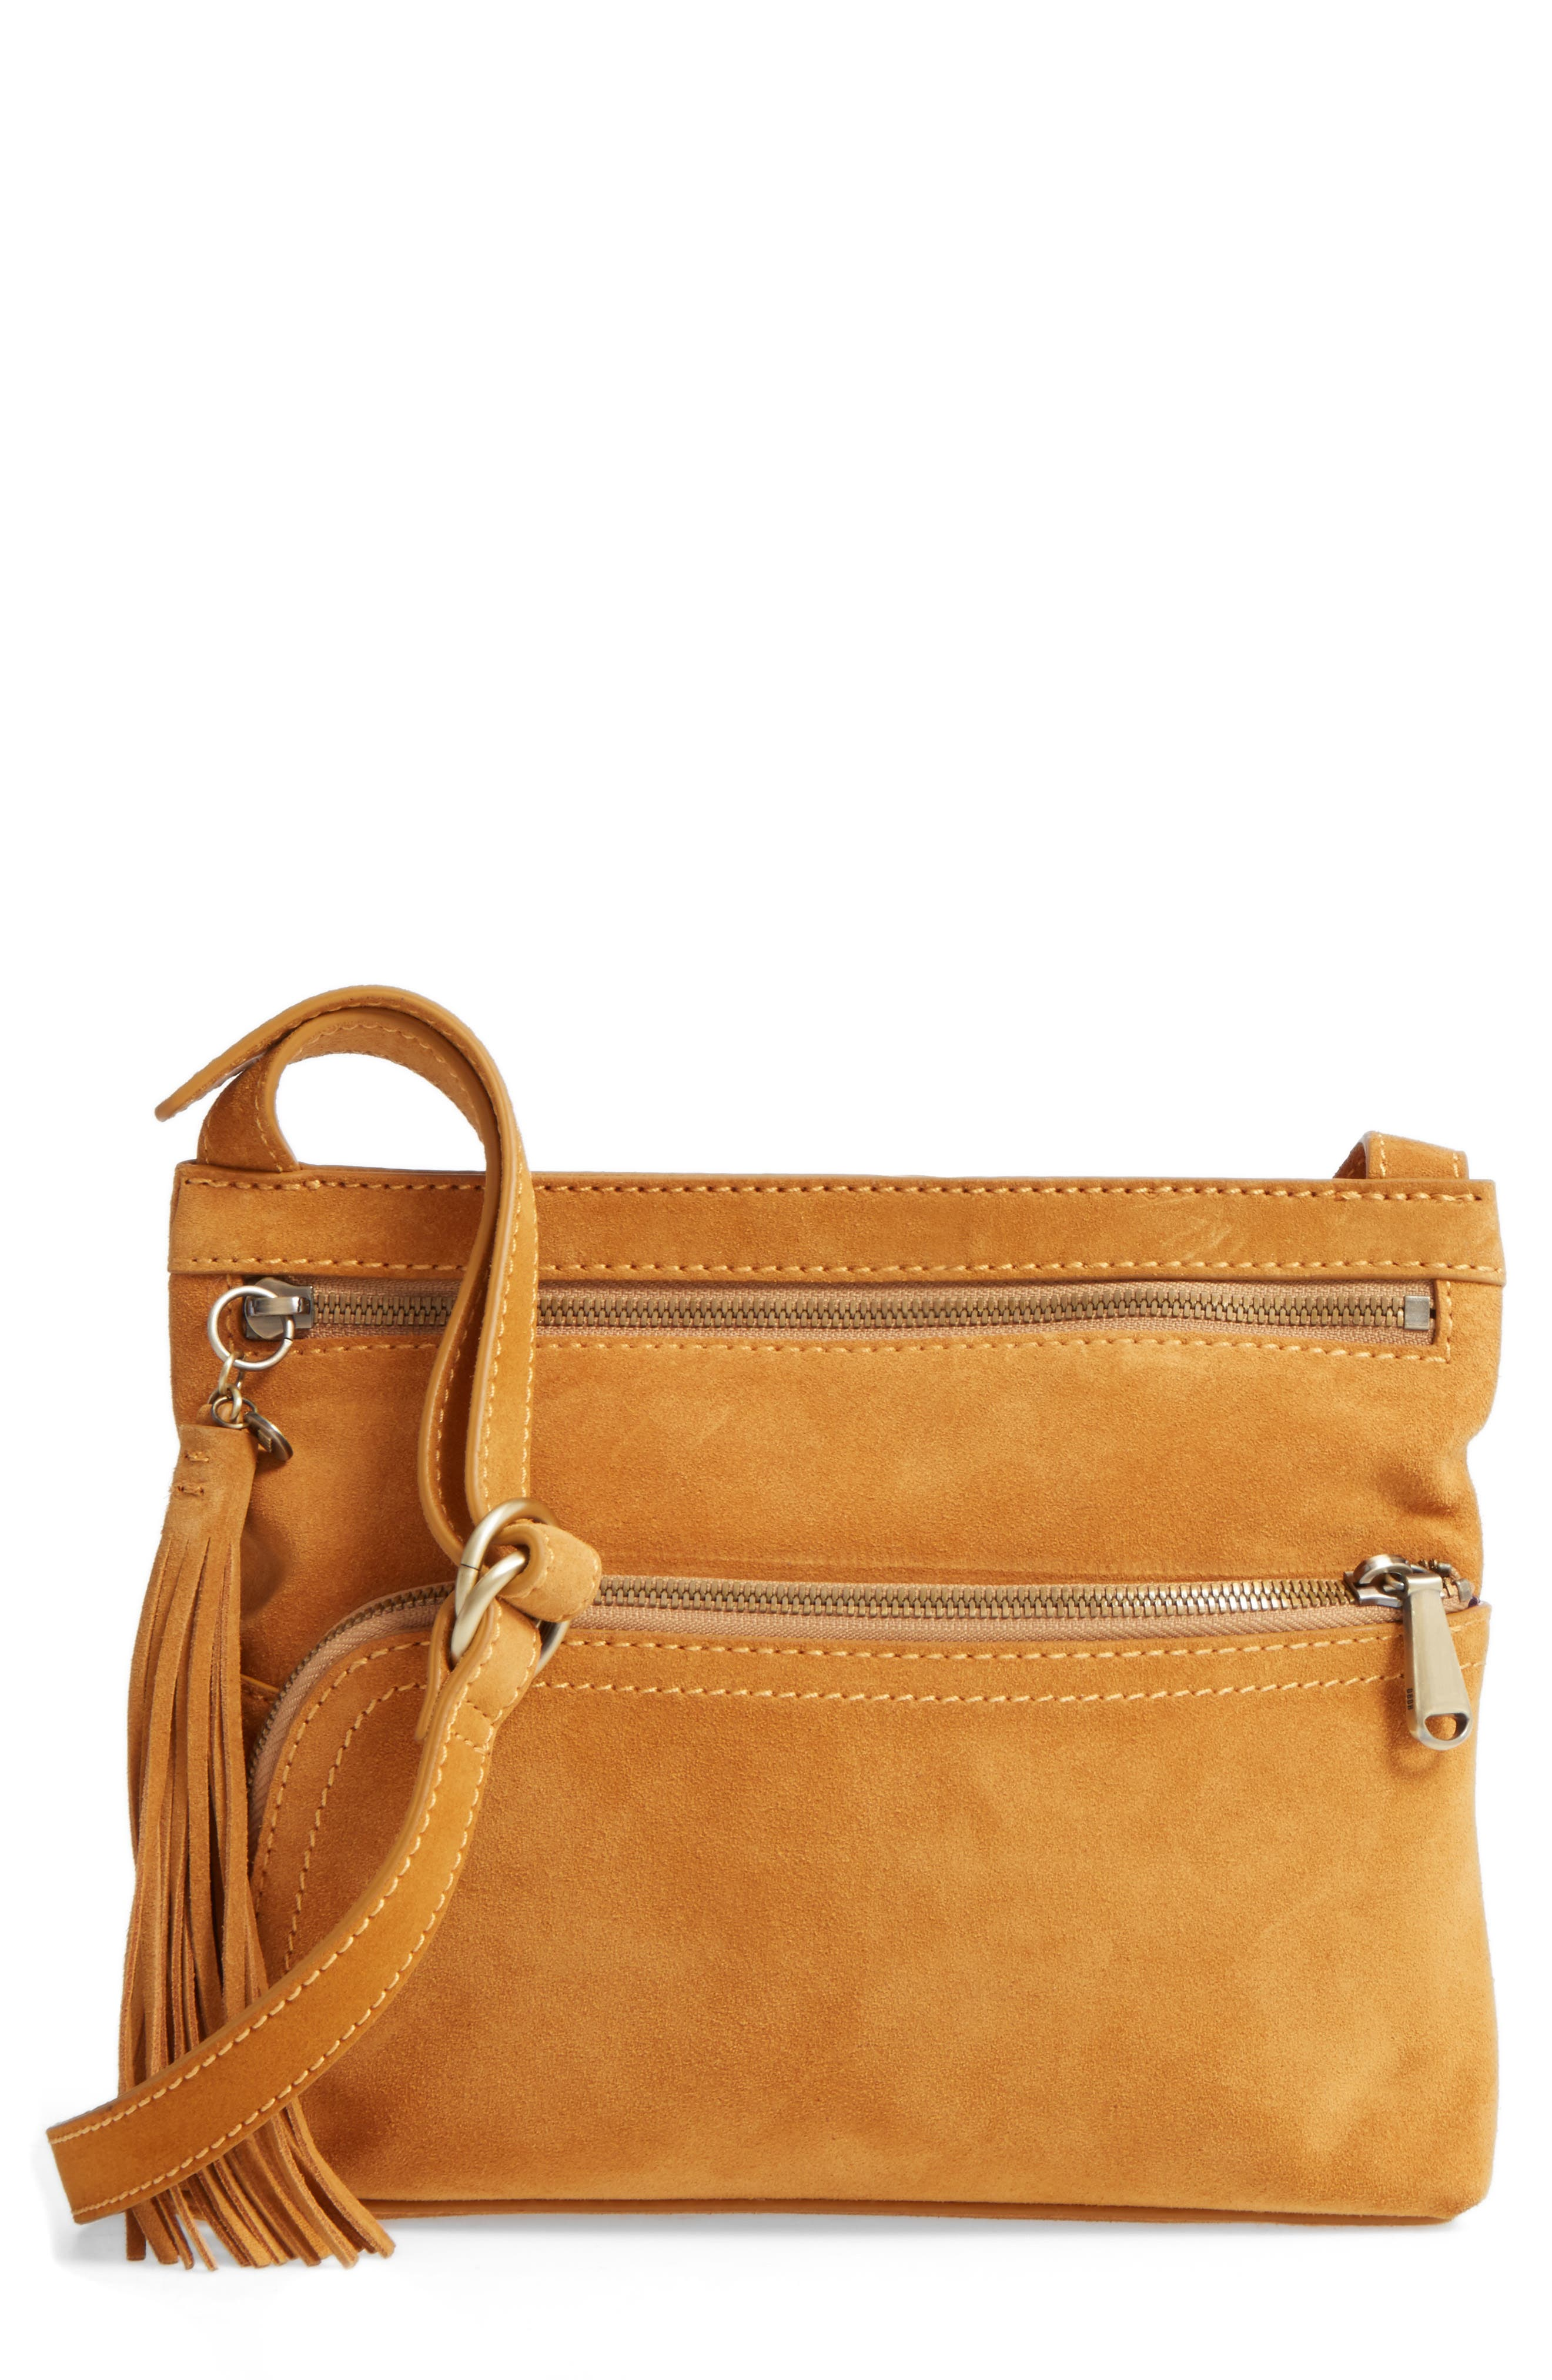 Main Image - Hobo Cassie Calfskin Suede Crossbody Bag